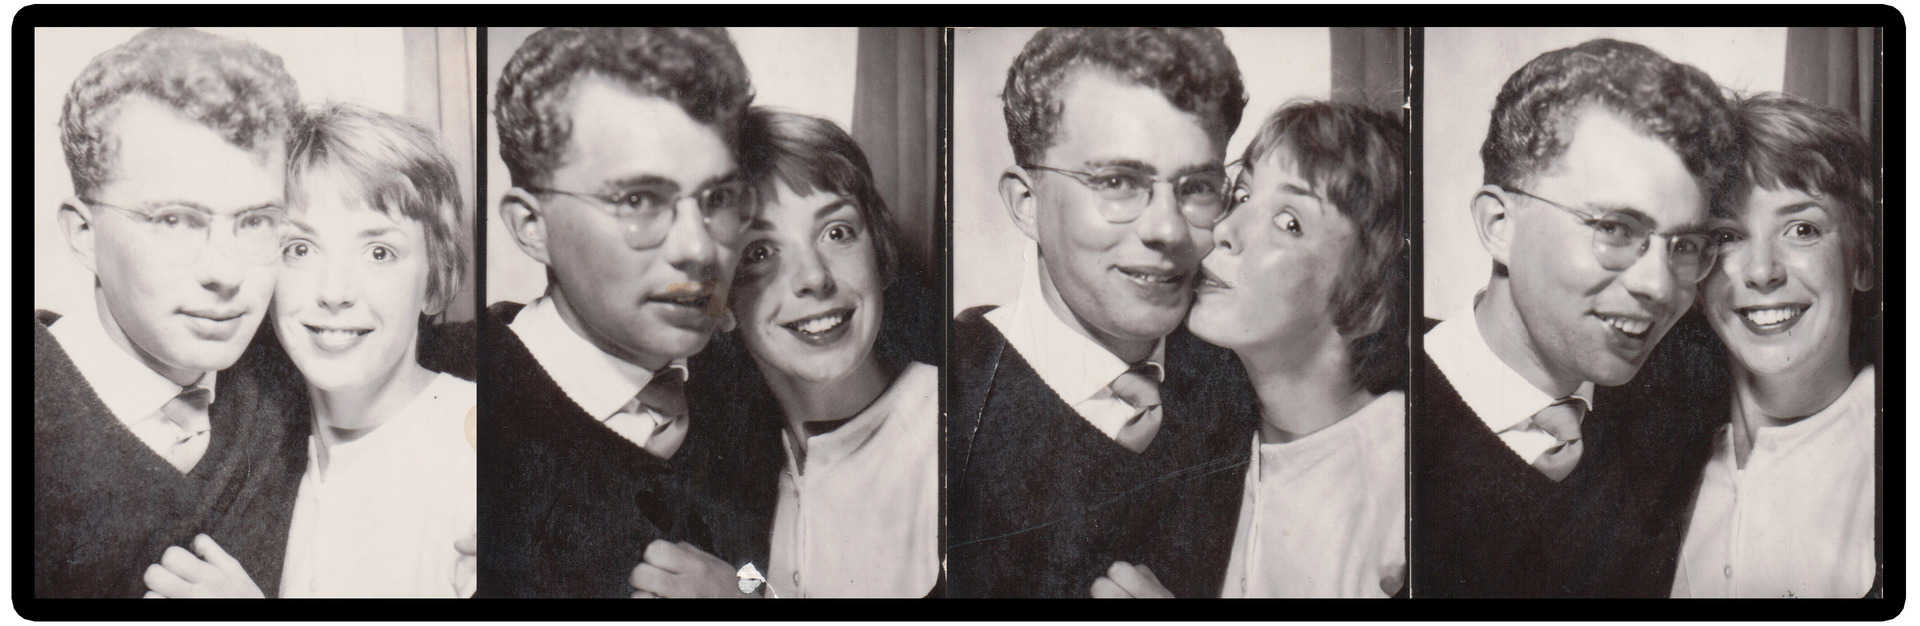 Gary and Dorothy in the photobooth before they were married. Late 1950s